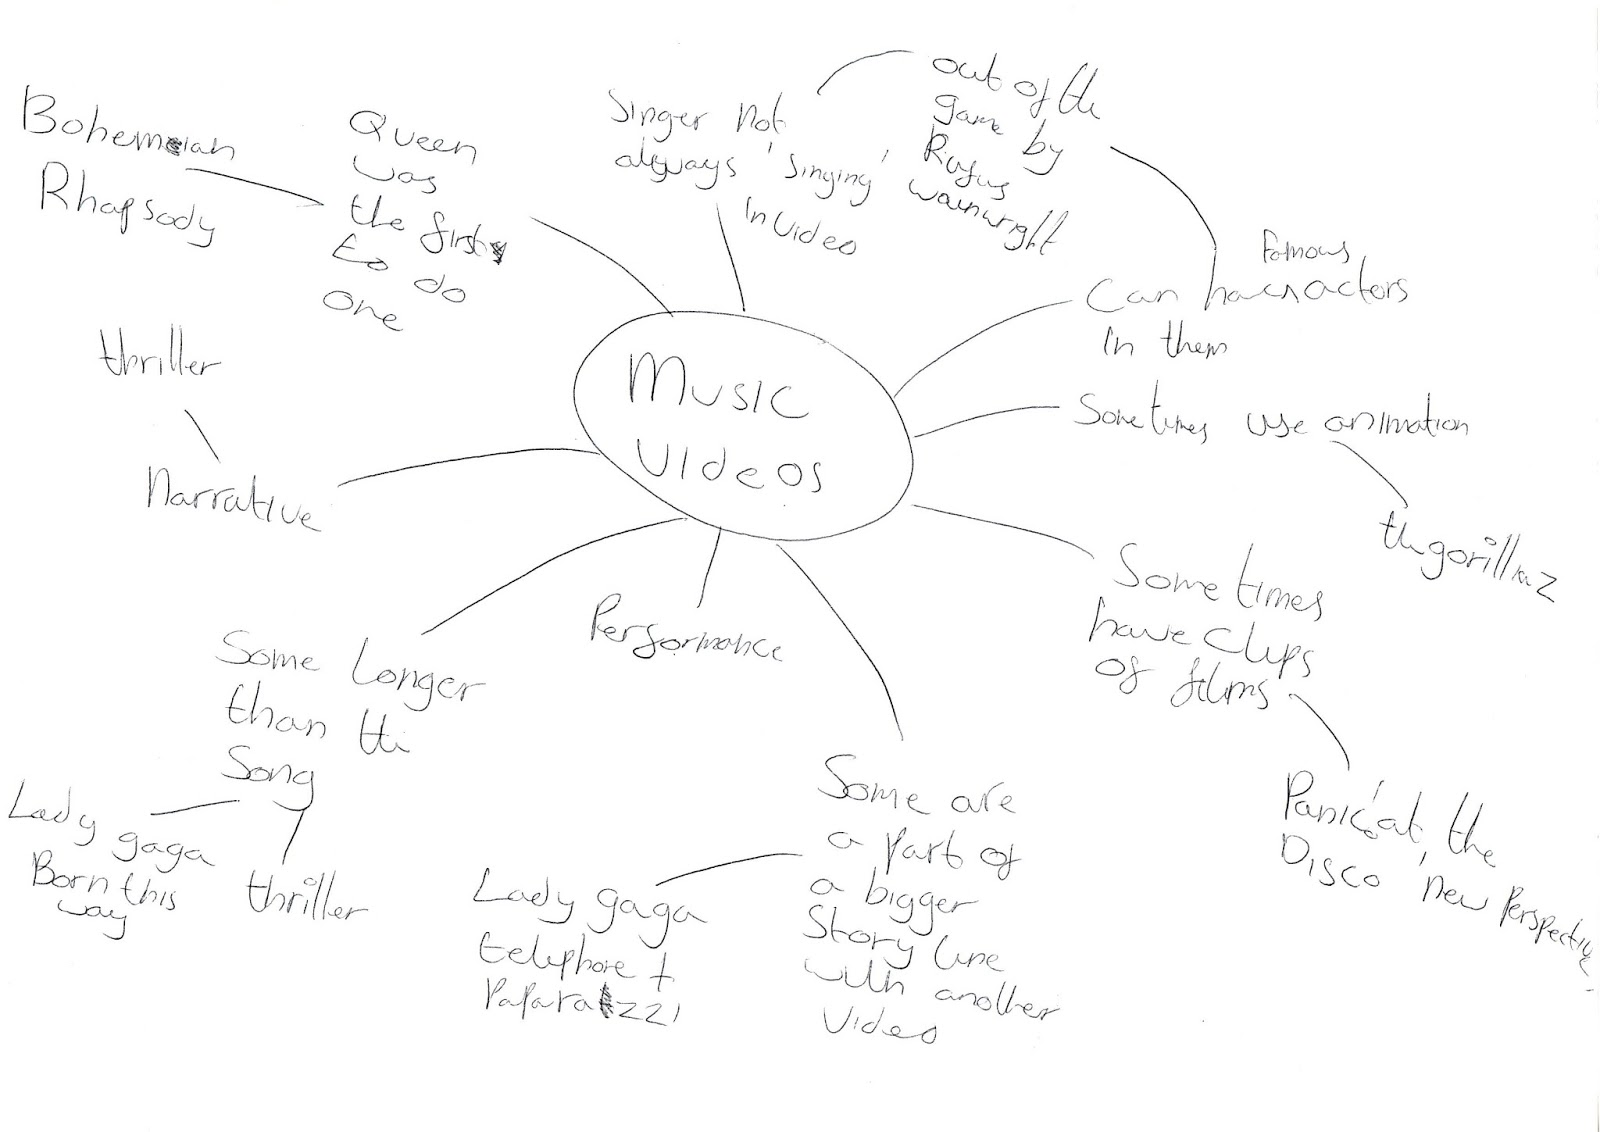 A2 Media Stu S Amy Coster Spider Diagram Of What I Know